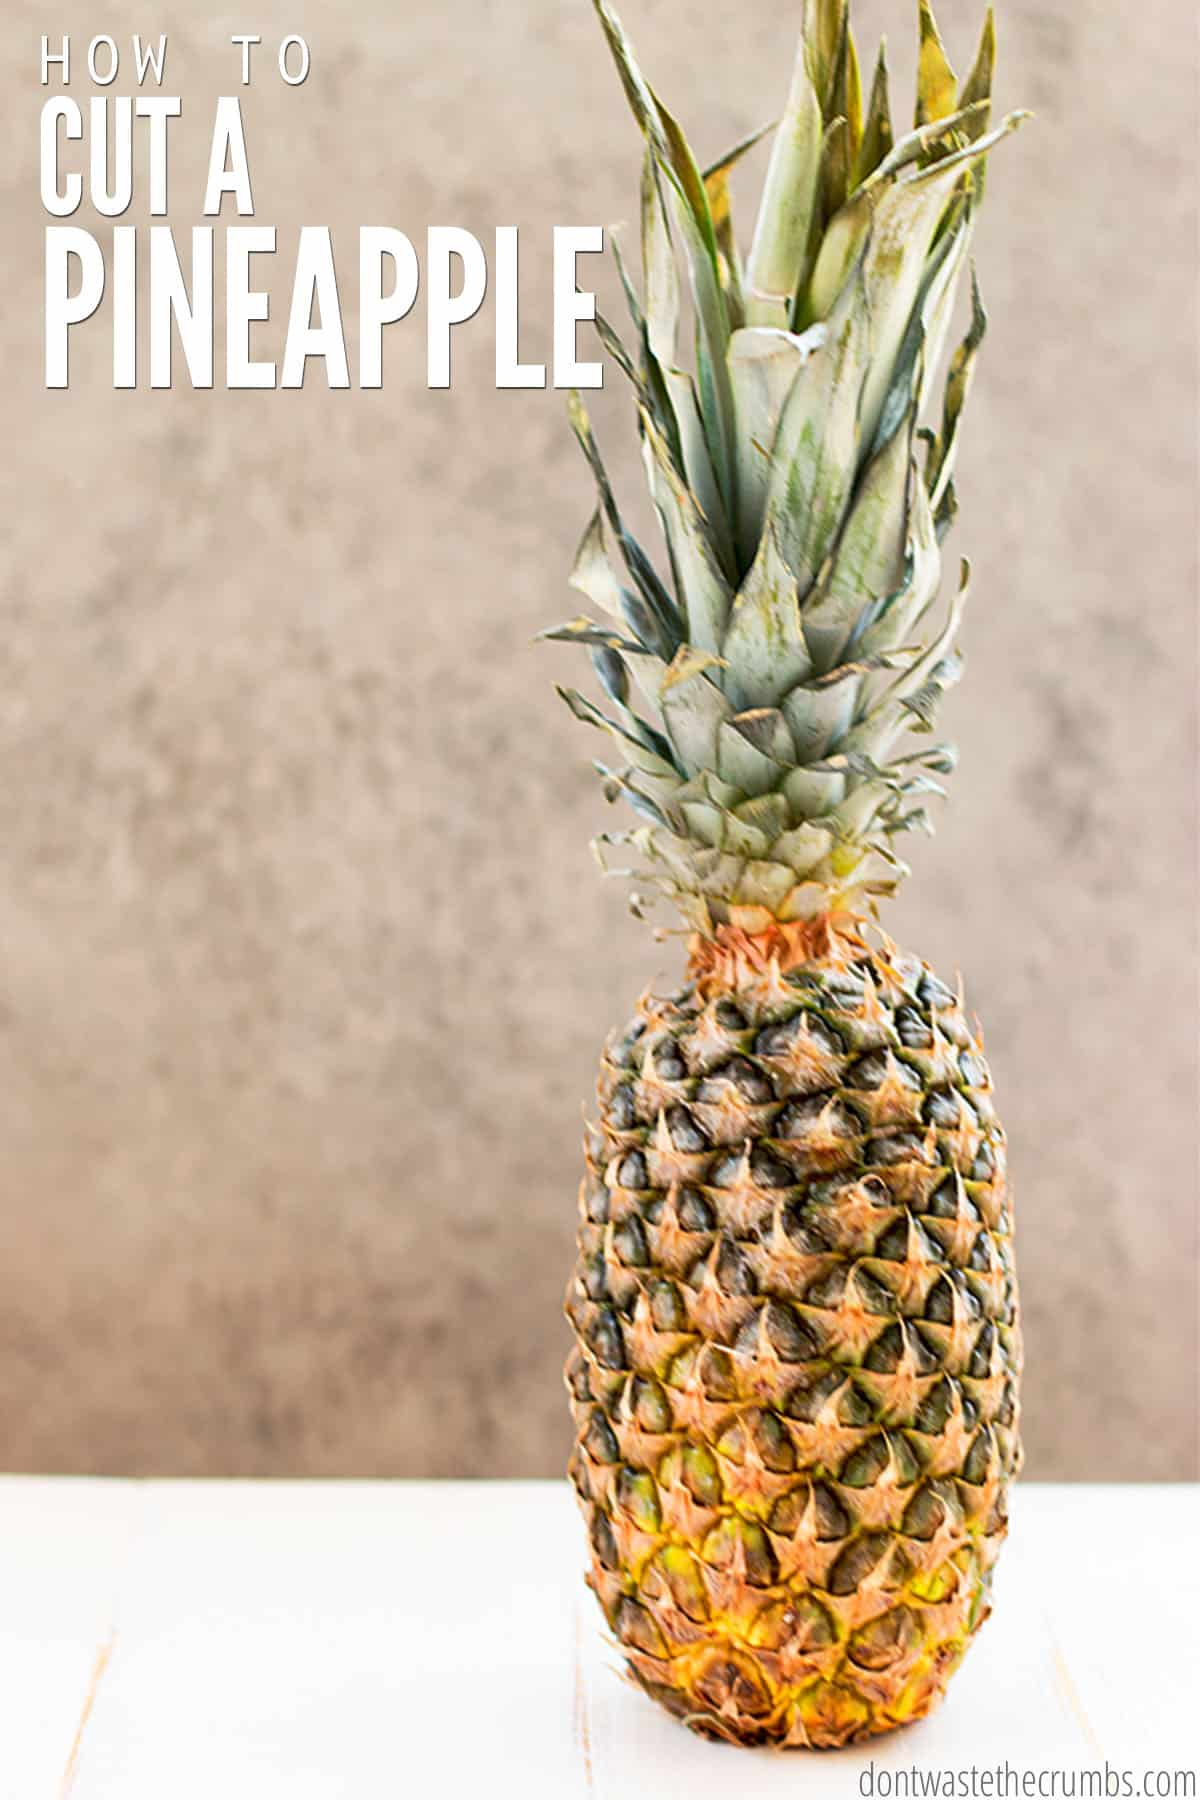 """A fresh whole pineapple with the leaves. The text overlay reads, """"How to cut a pineapple."""""""